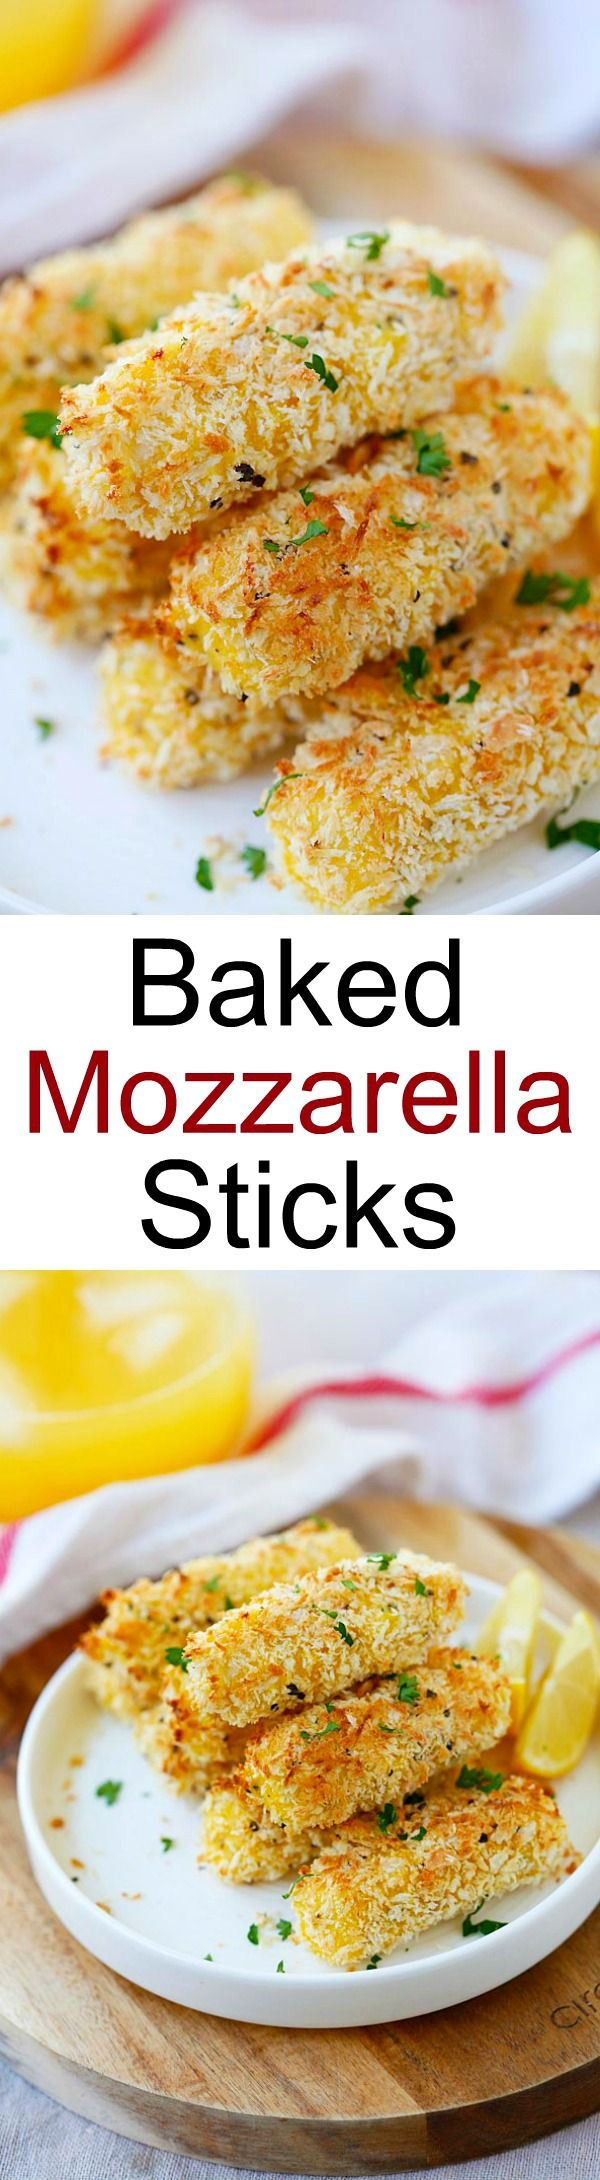 Baked Mozzarella Cheese Sticks – crispy cheese sticks coated with Japanese panko and baked to golden perfection. Easy peasy recipe that everyone loves | rasamalaysia.com